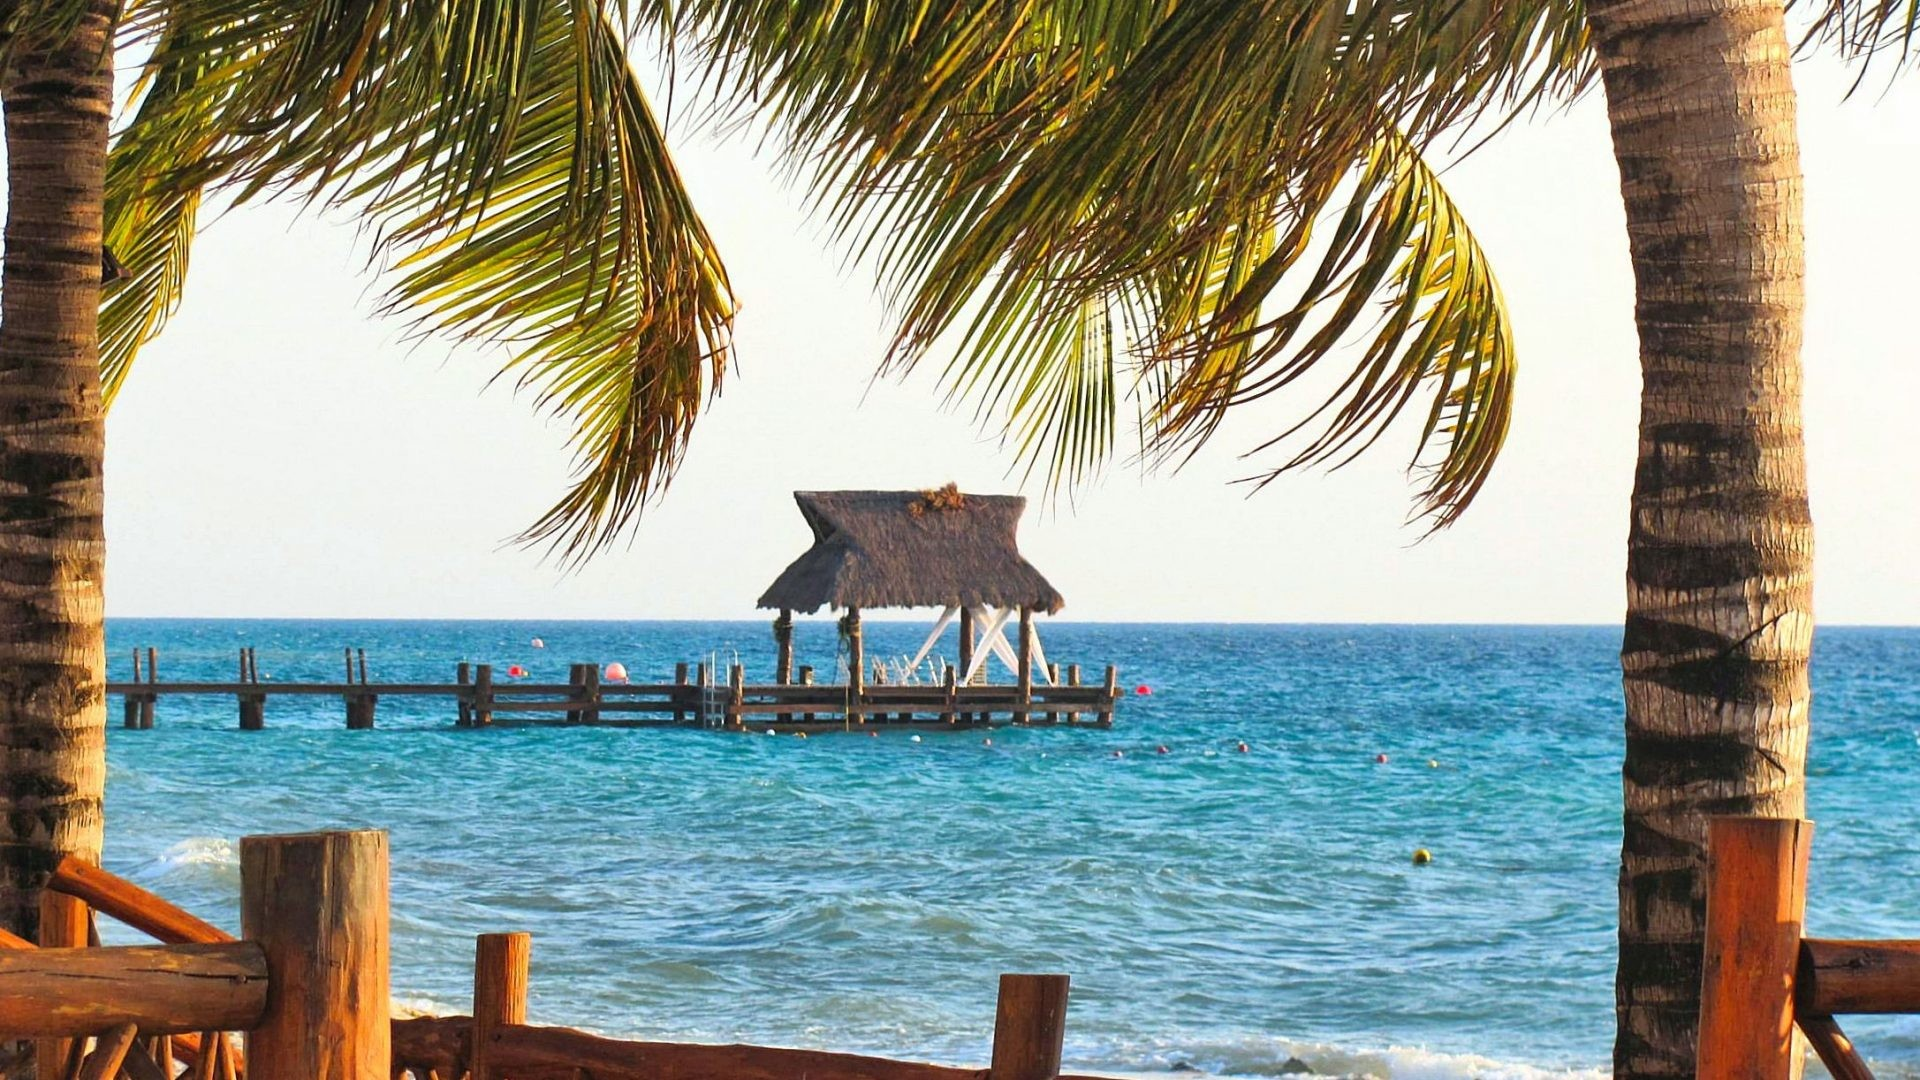 Mexico Tag – Beach Palm Ocean Pier Blue Relaxation Trees Bar View Waves  Mexico Cozumel Nature